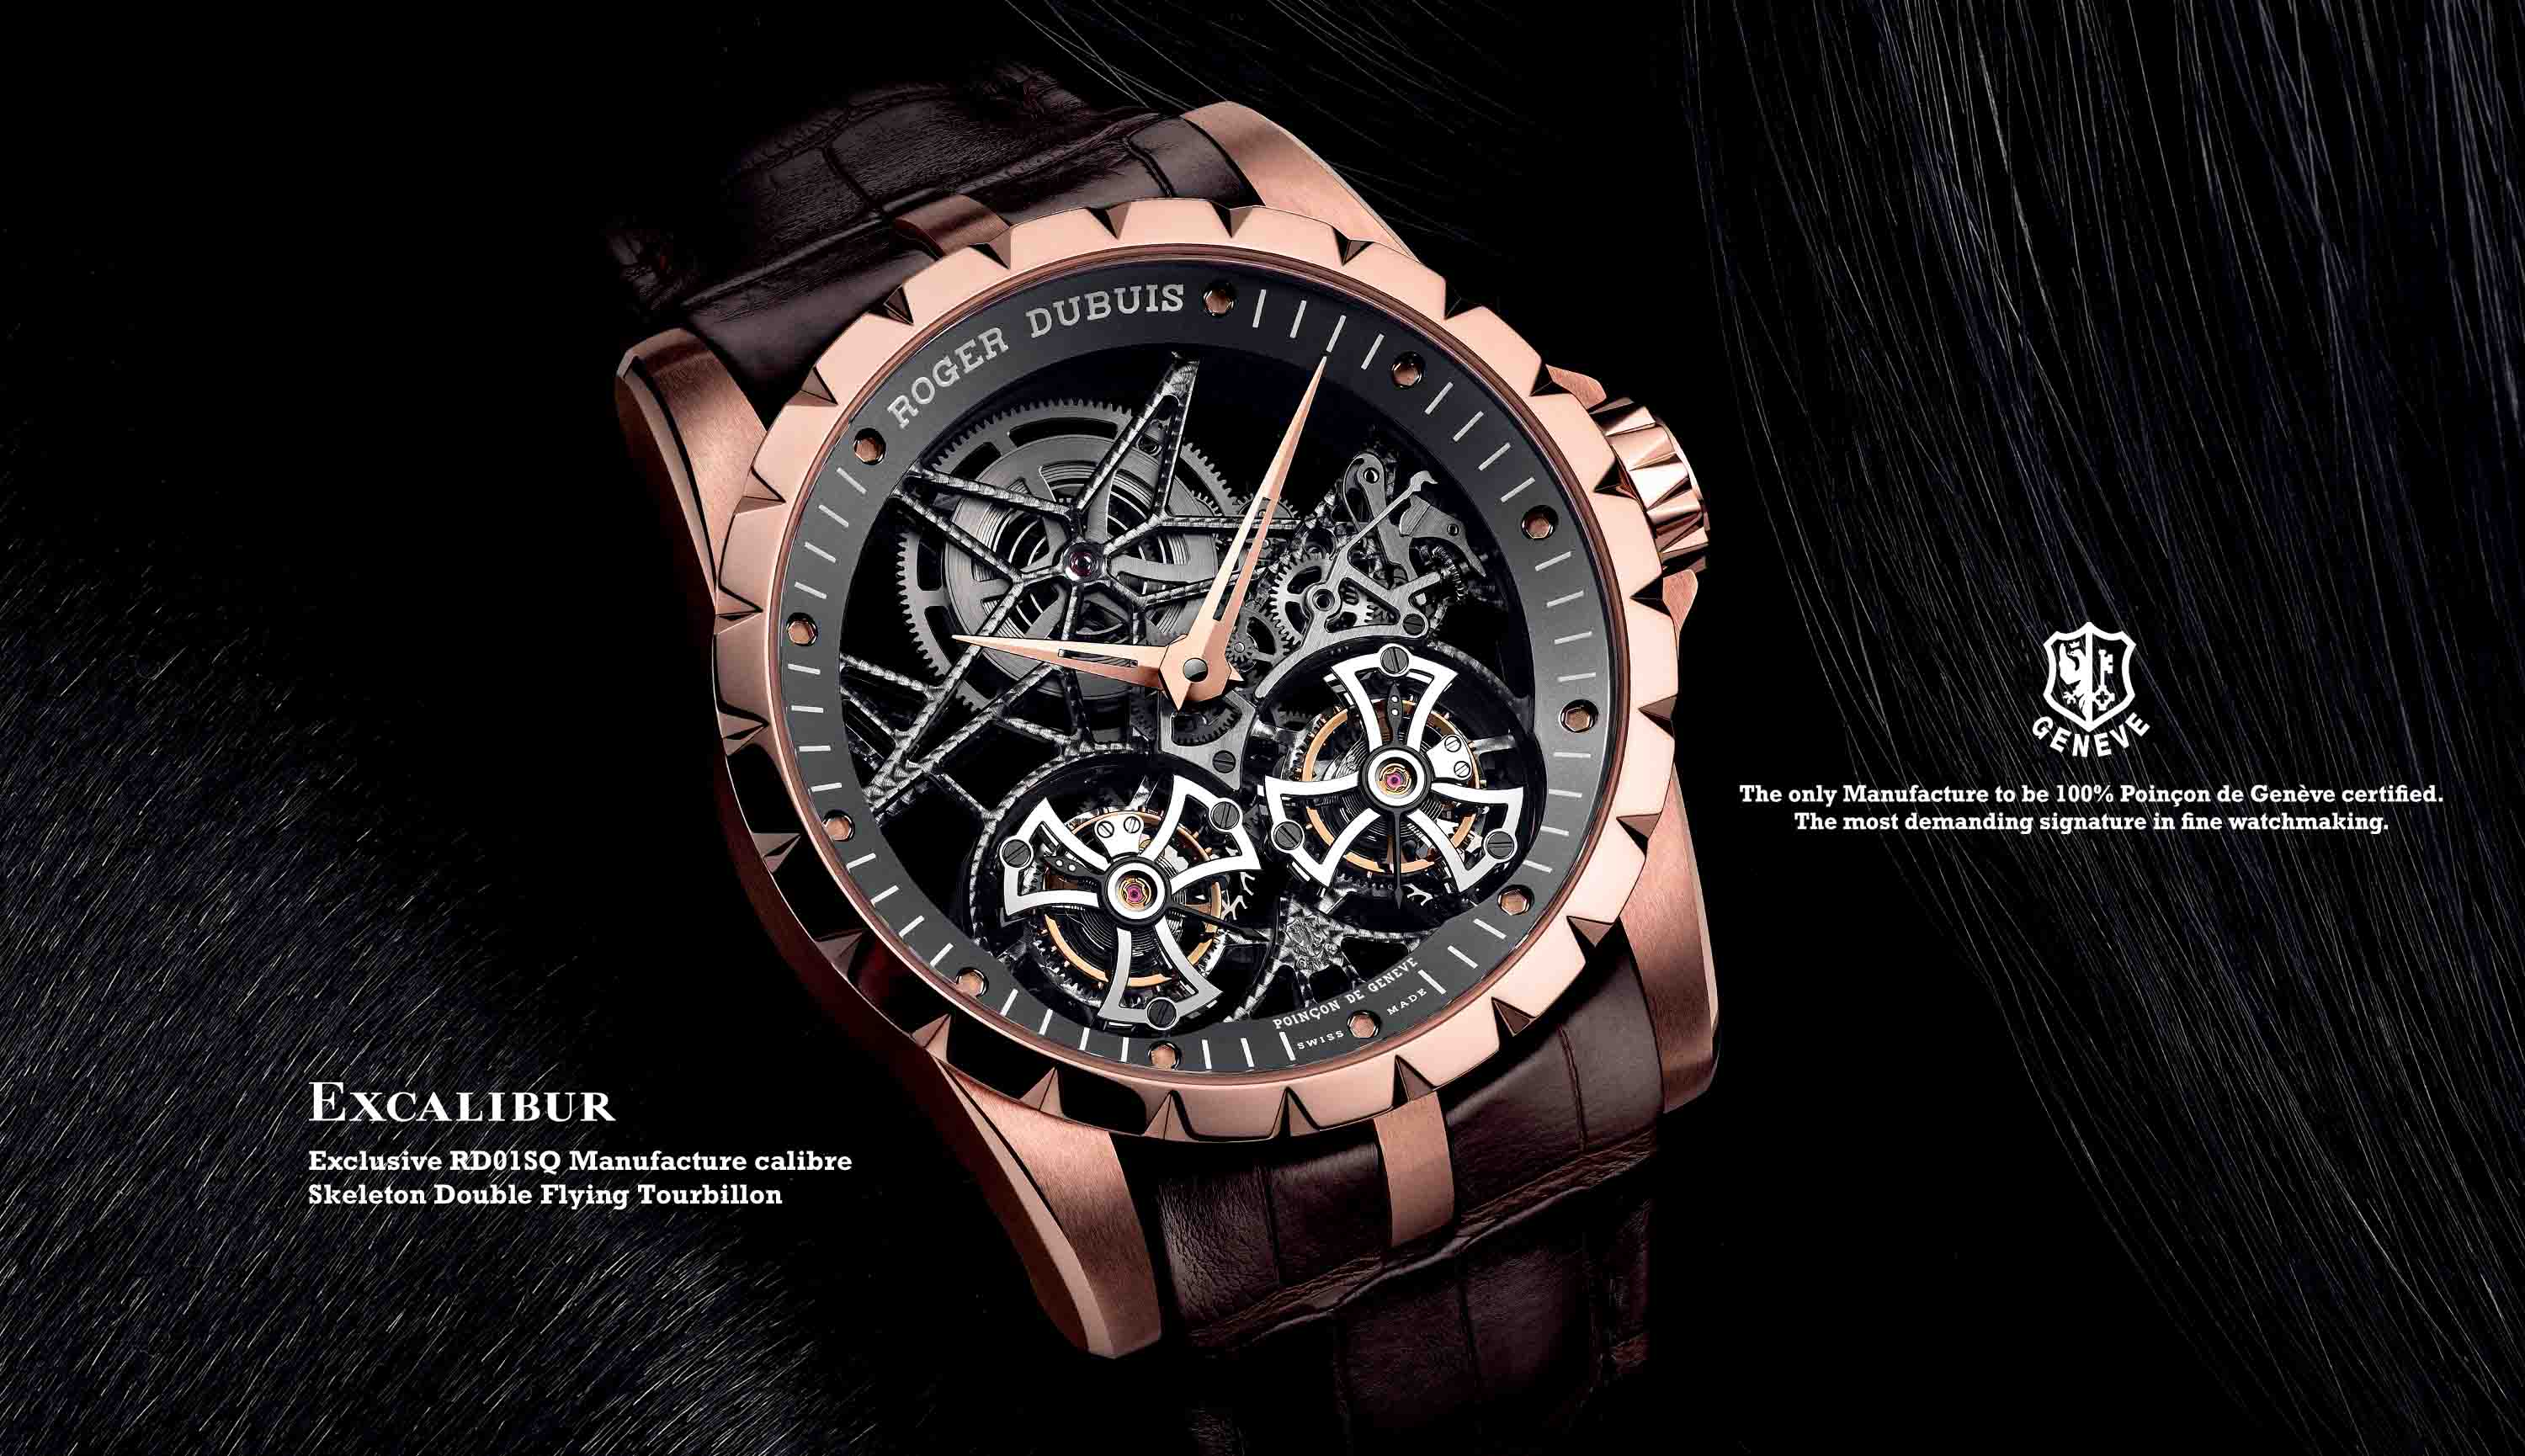 Roger Dubuis Excalibur Skeleton Double Flying warna Emas Merah Muda